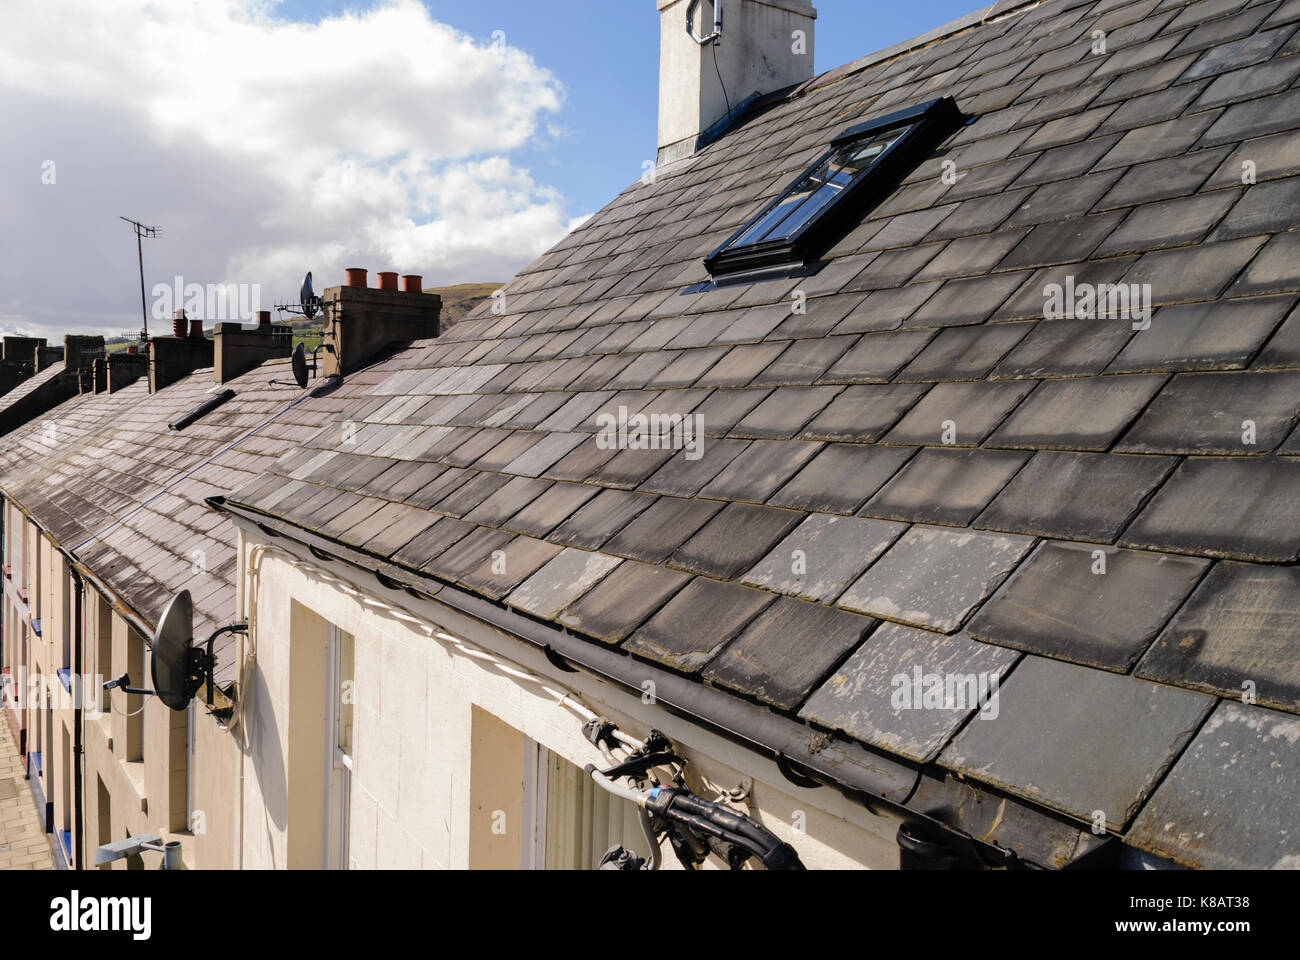 Roof tiles on a terrace row of old houses. - Stock Image